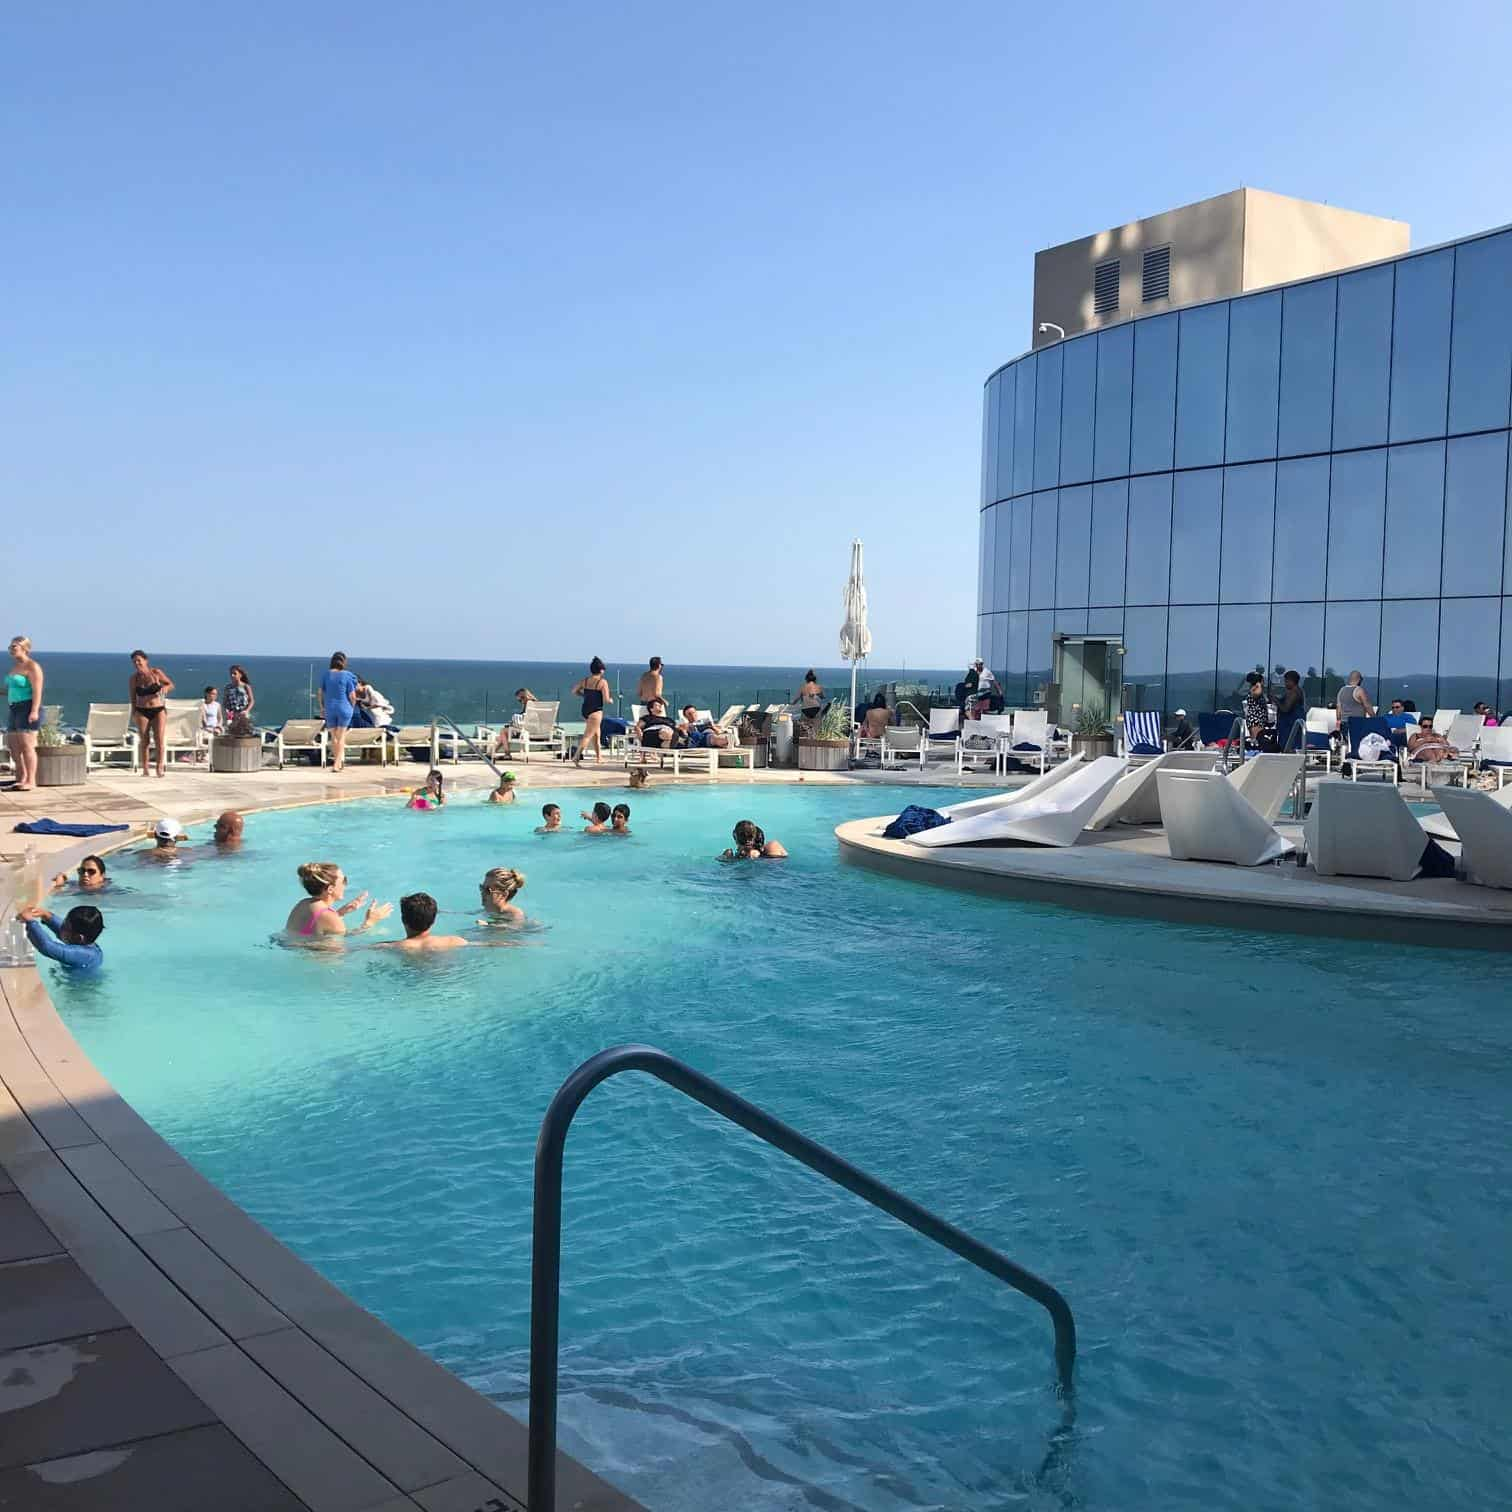 Ocean Atlantic City Pool